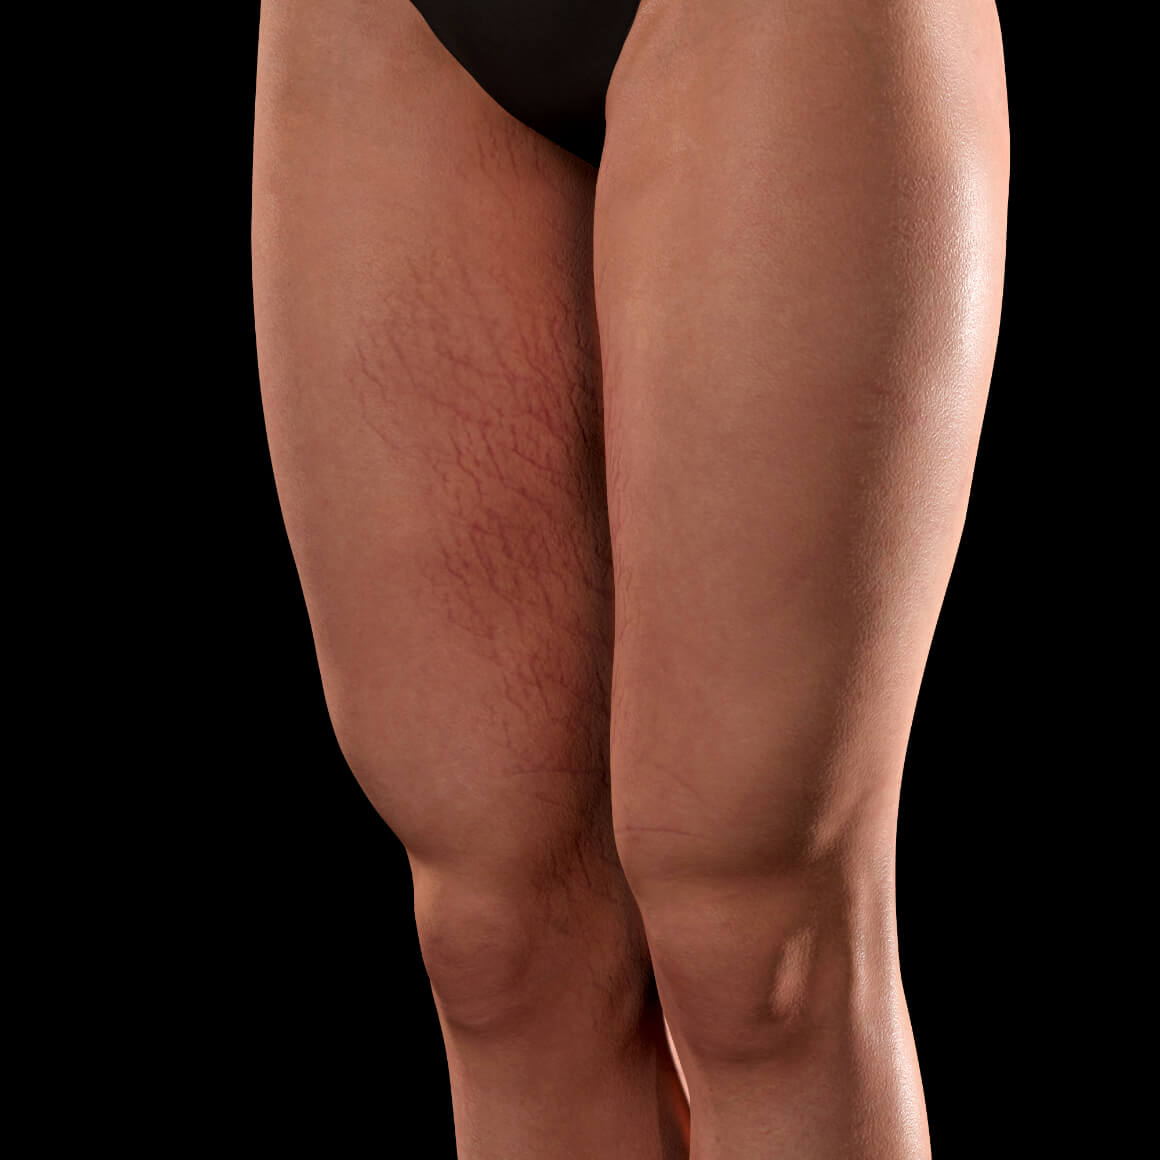 Angled Clinique Chloé female patient with stretch marks on her thighs